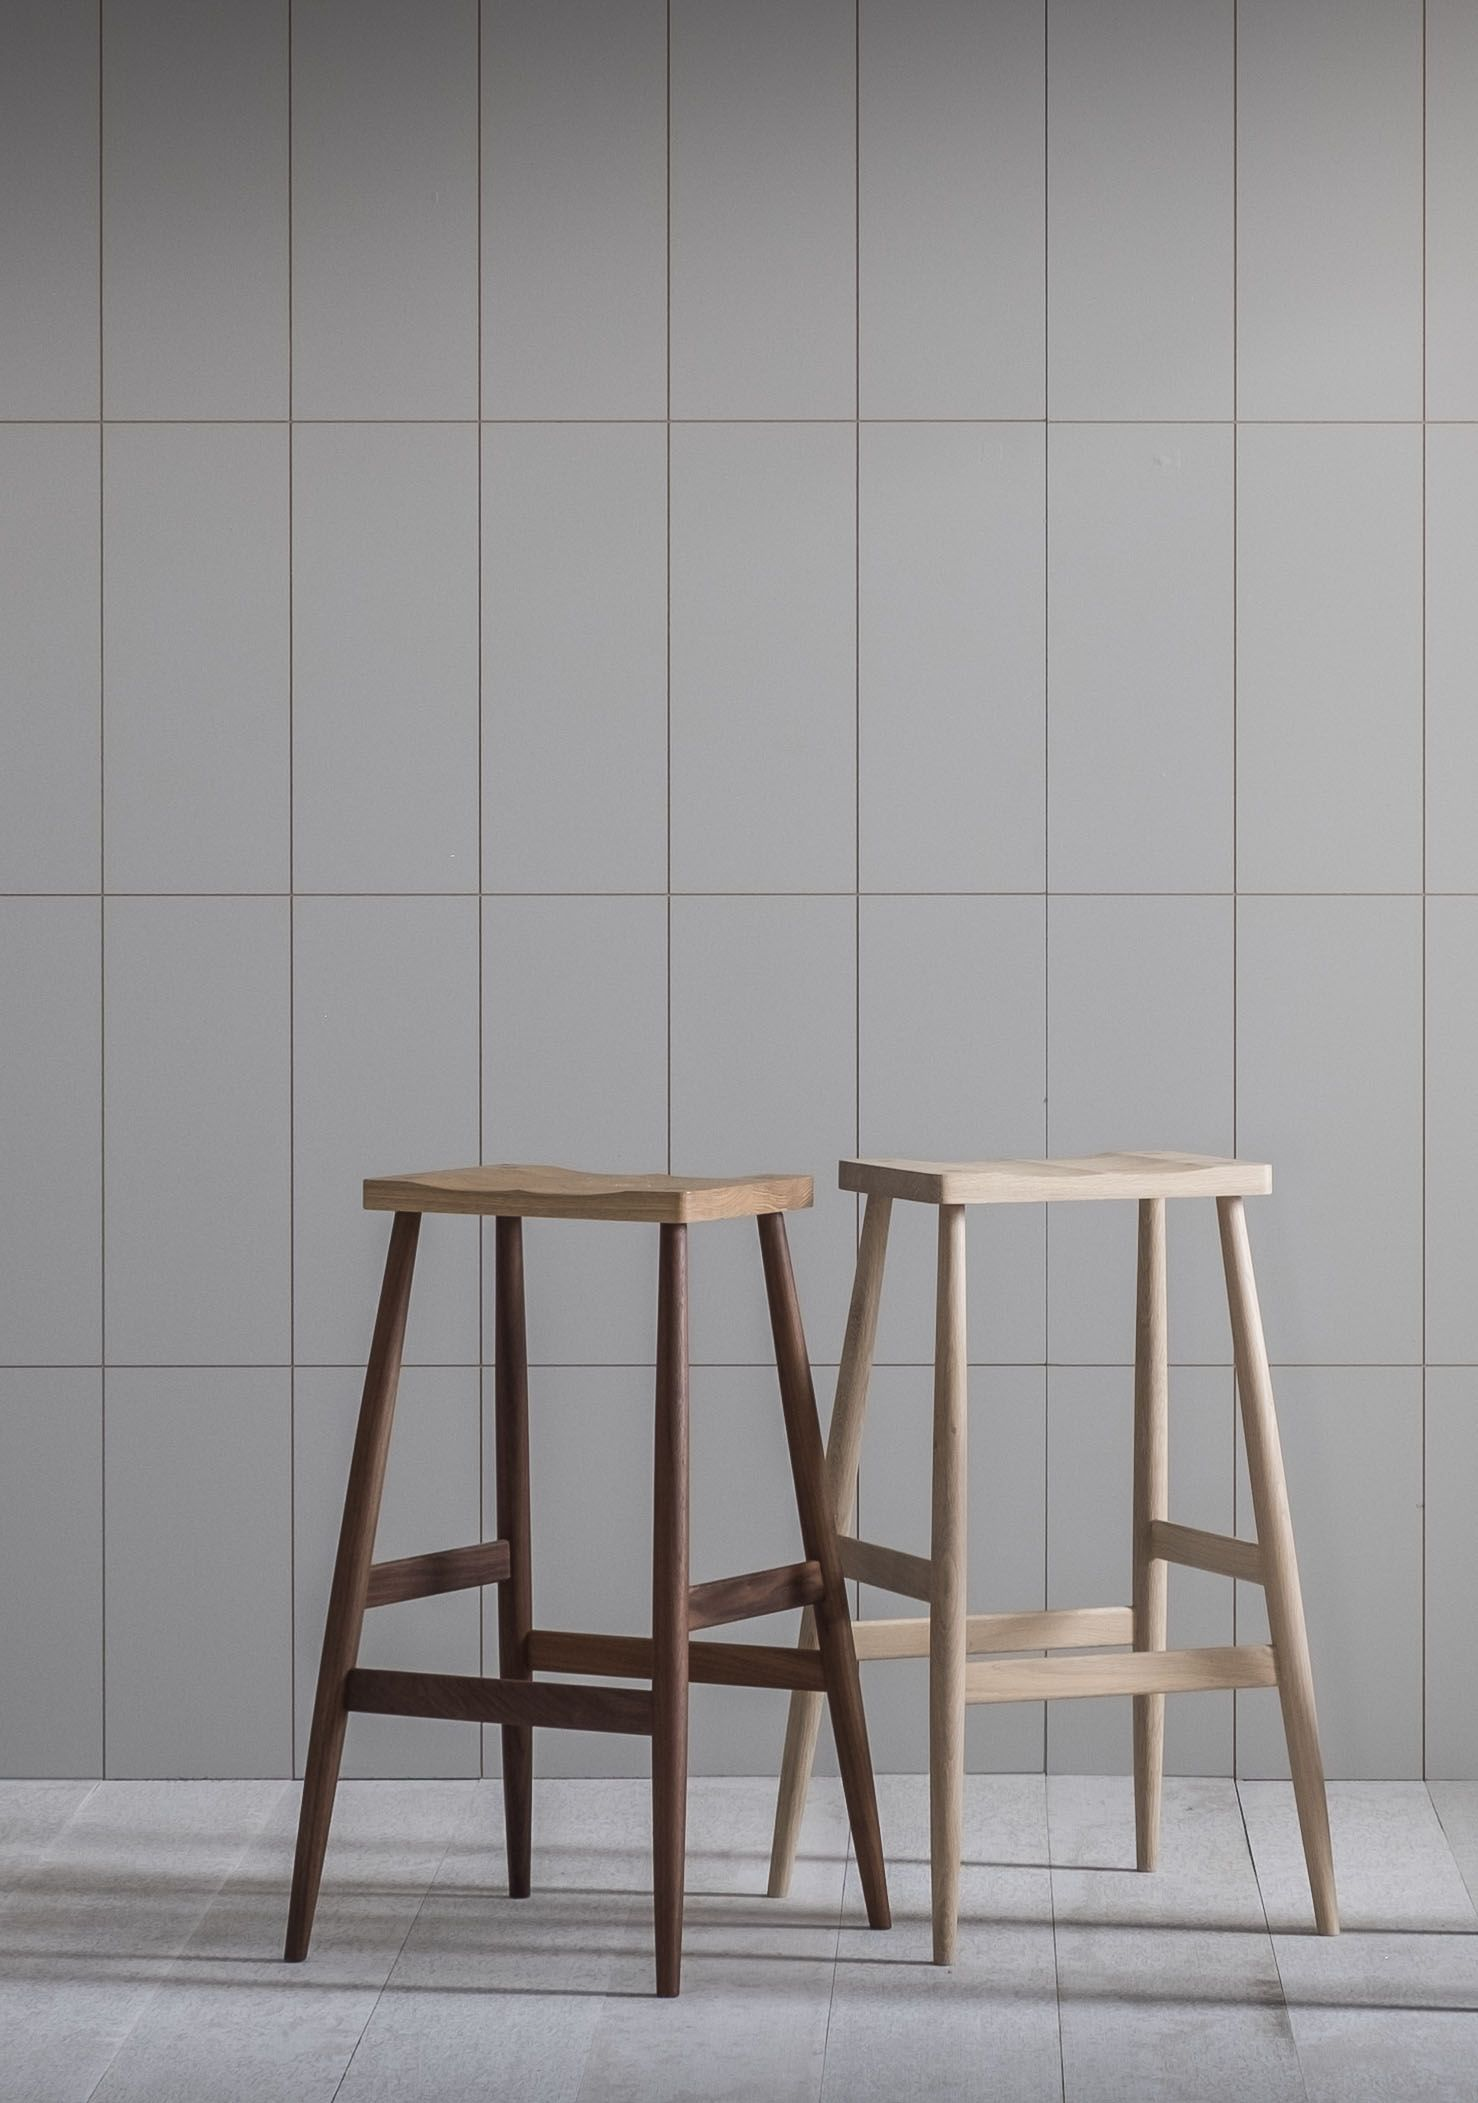 Remarkable Imo Bar Stool From Pinch Furniture Bar Stools Stool Uwap Interior Chair Design Uwaporg